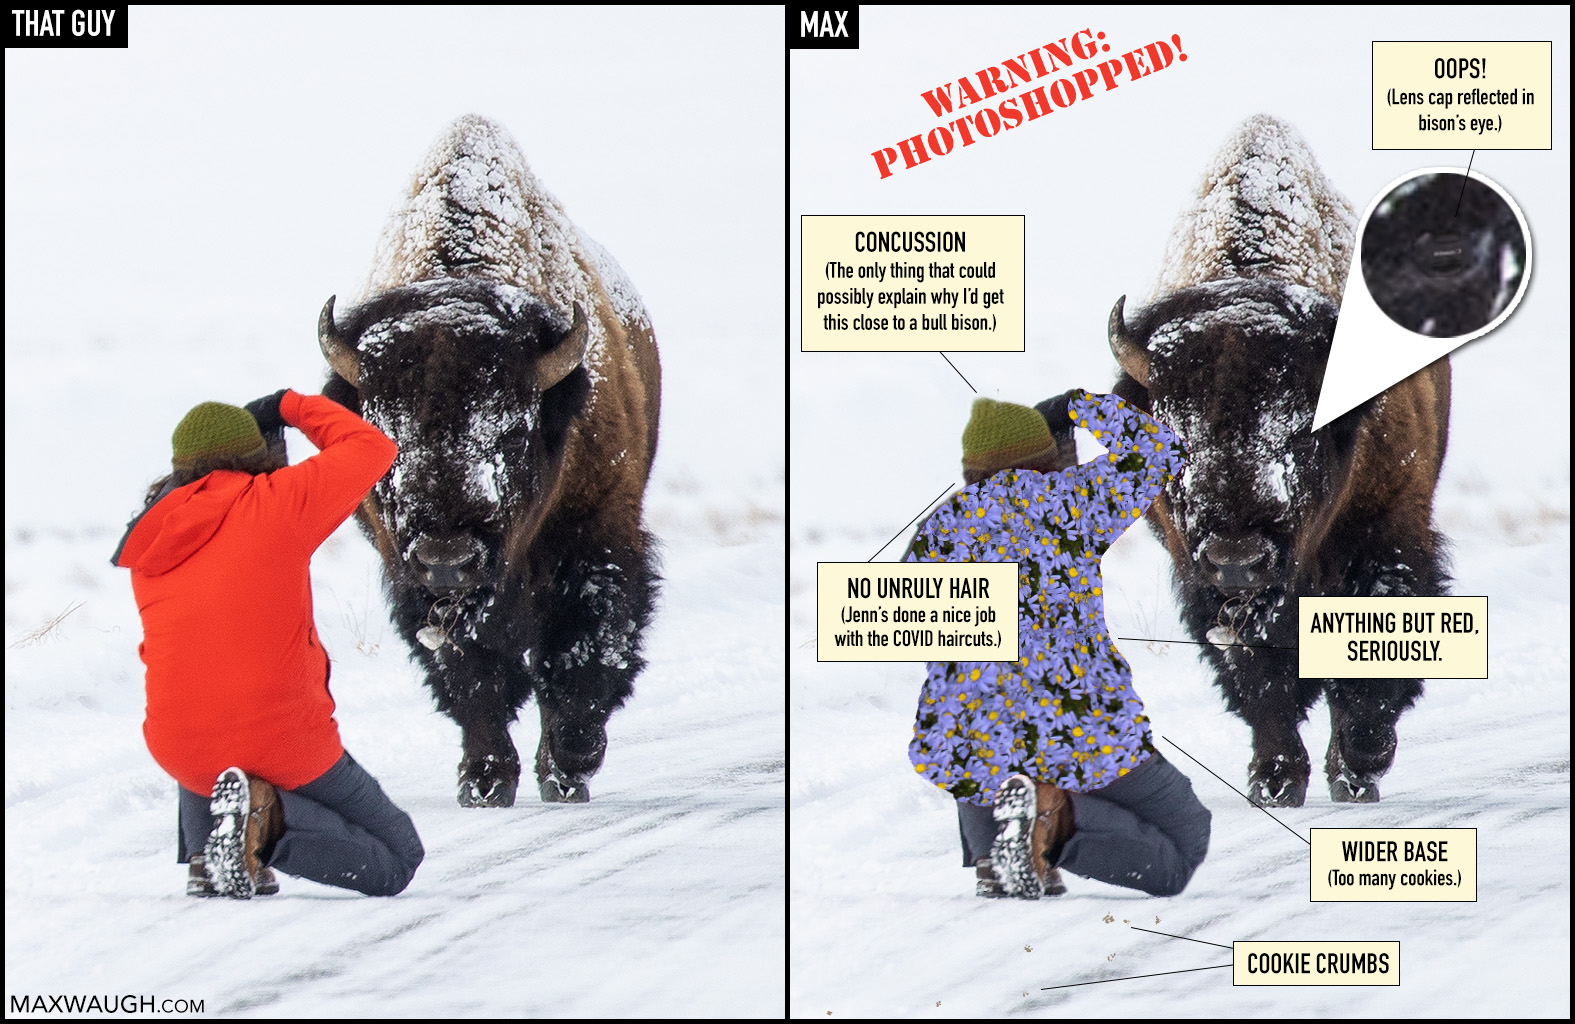 Bison and photographer